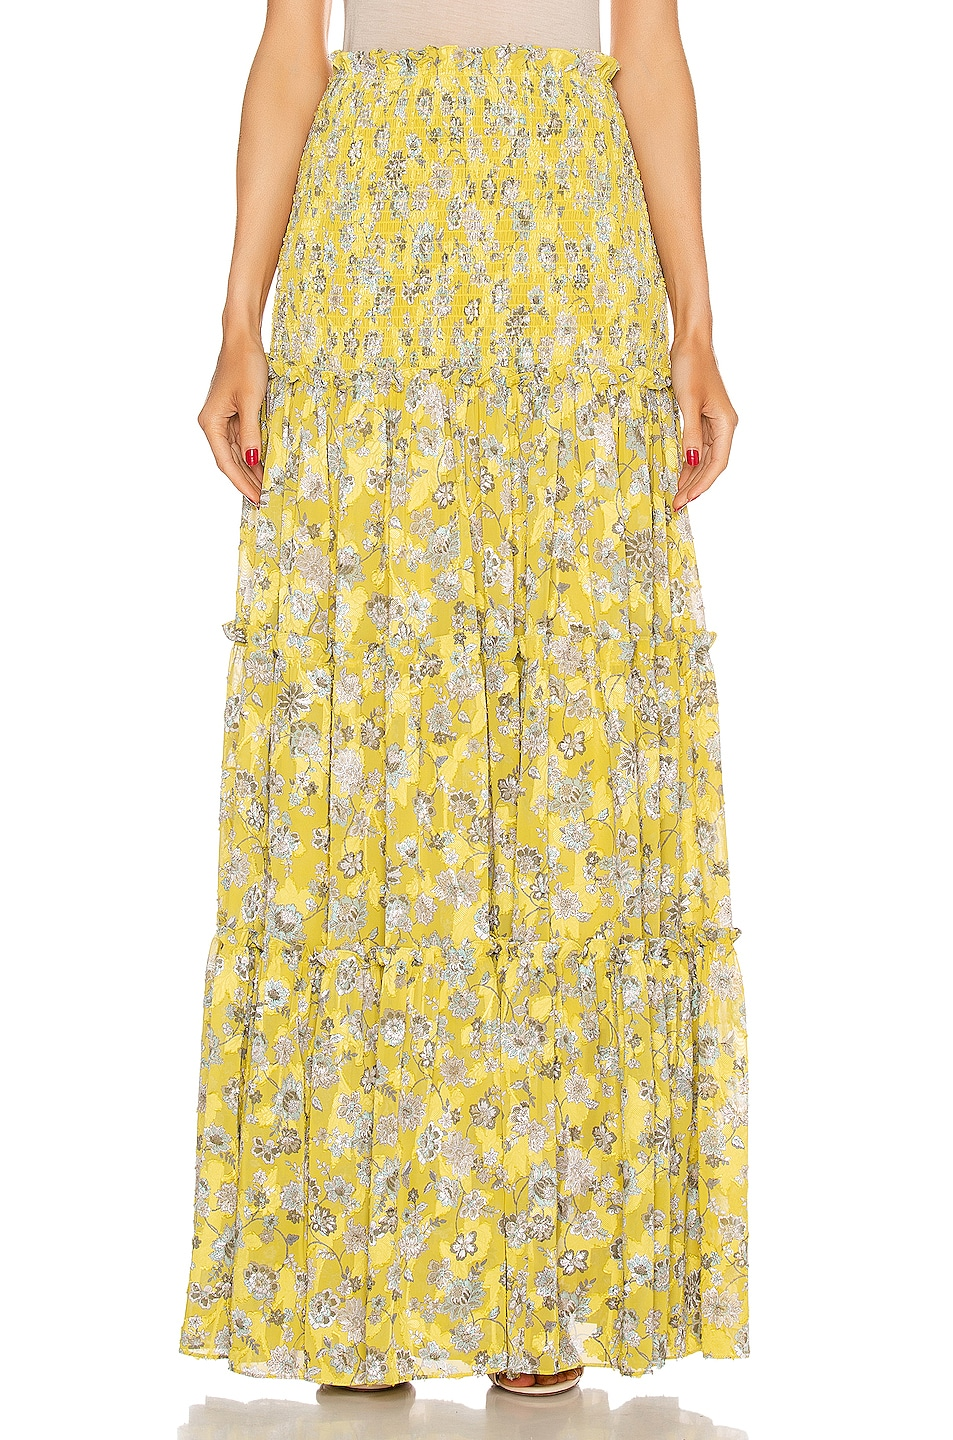 Image 1 of Alexis Galarza Skirt in Citron Floral